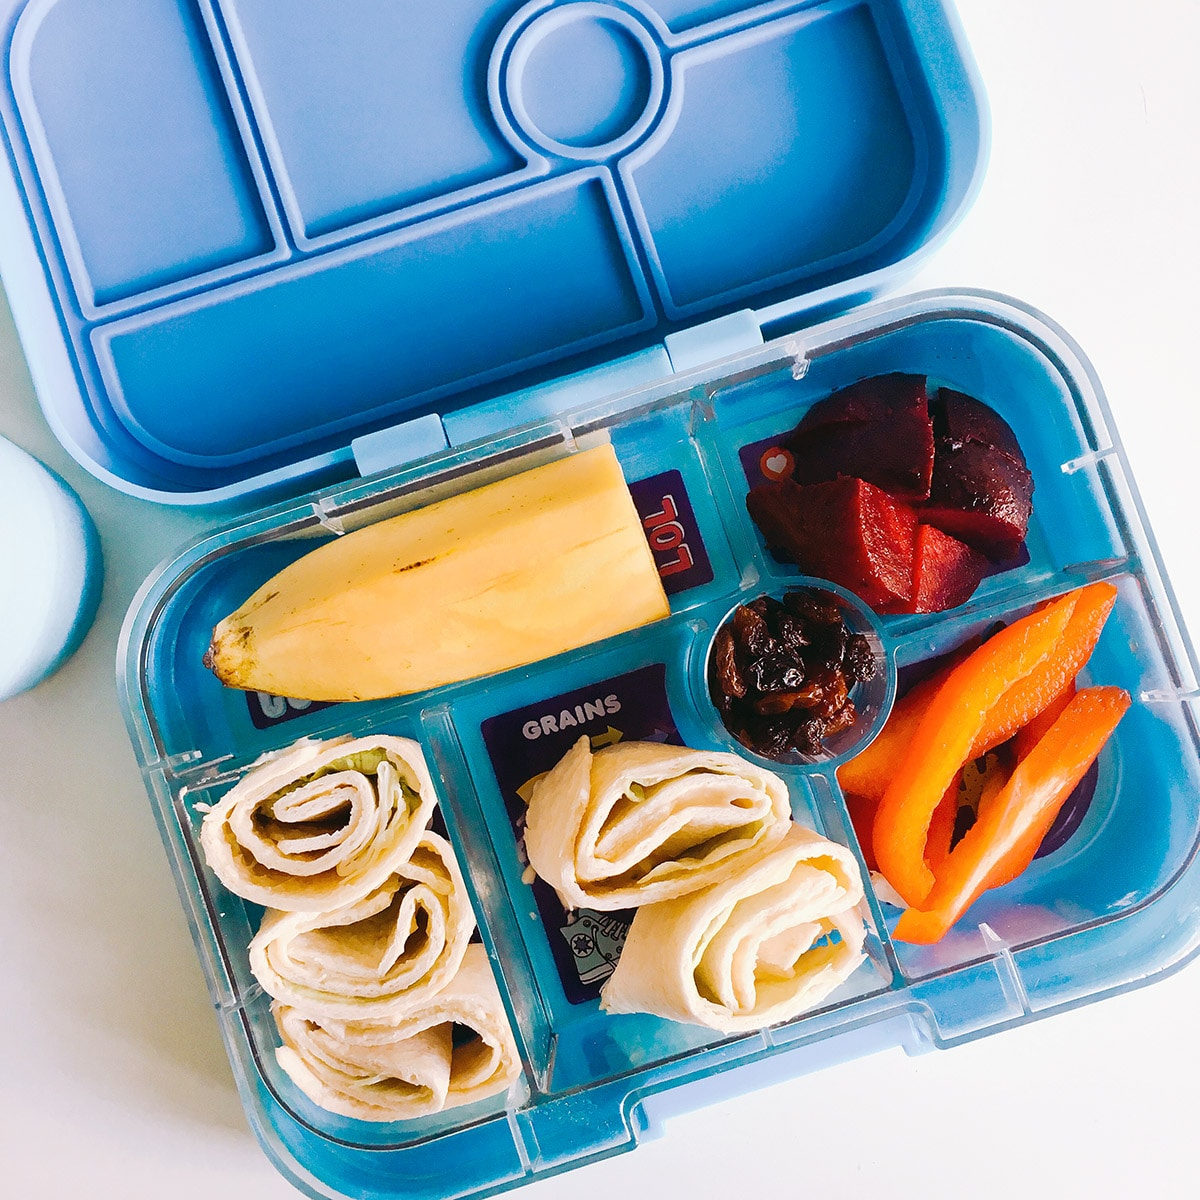 blue Yumbox filled with healthy foods - healthy lunchbox ideas by Sneaky Veg